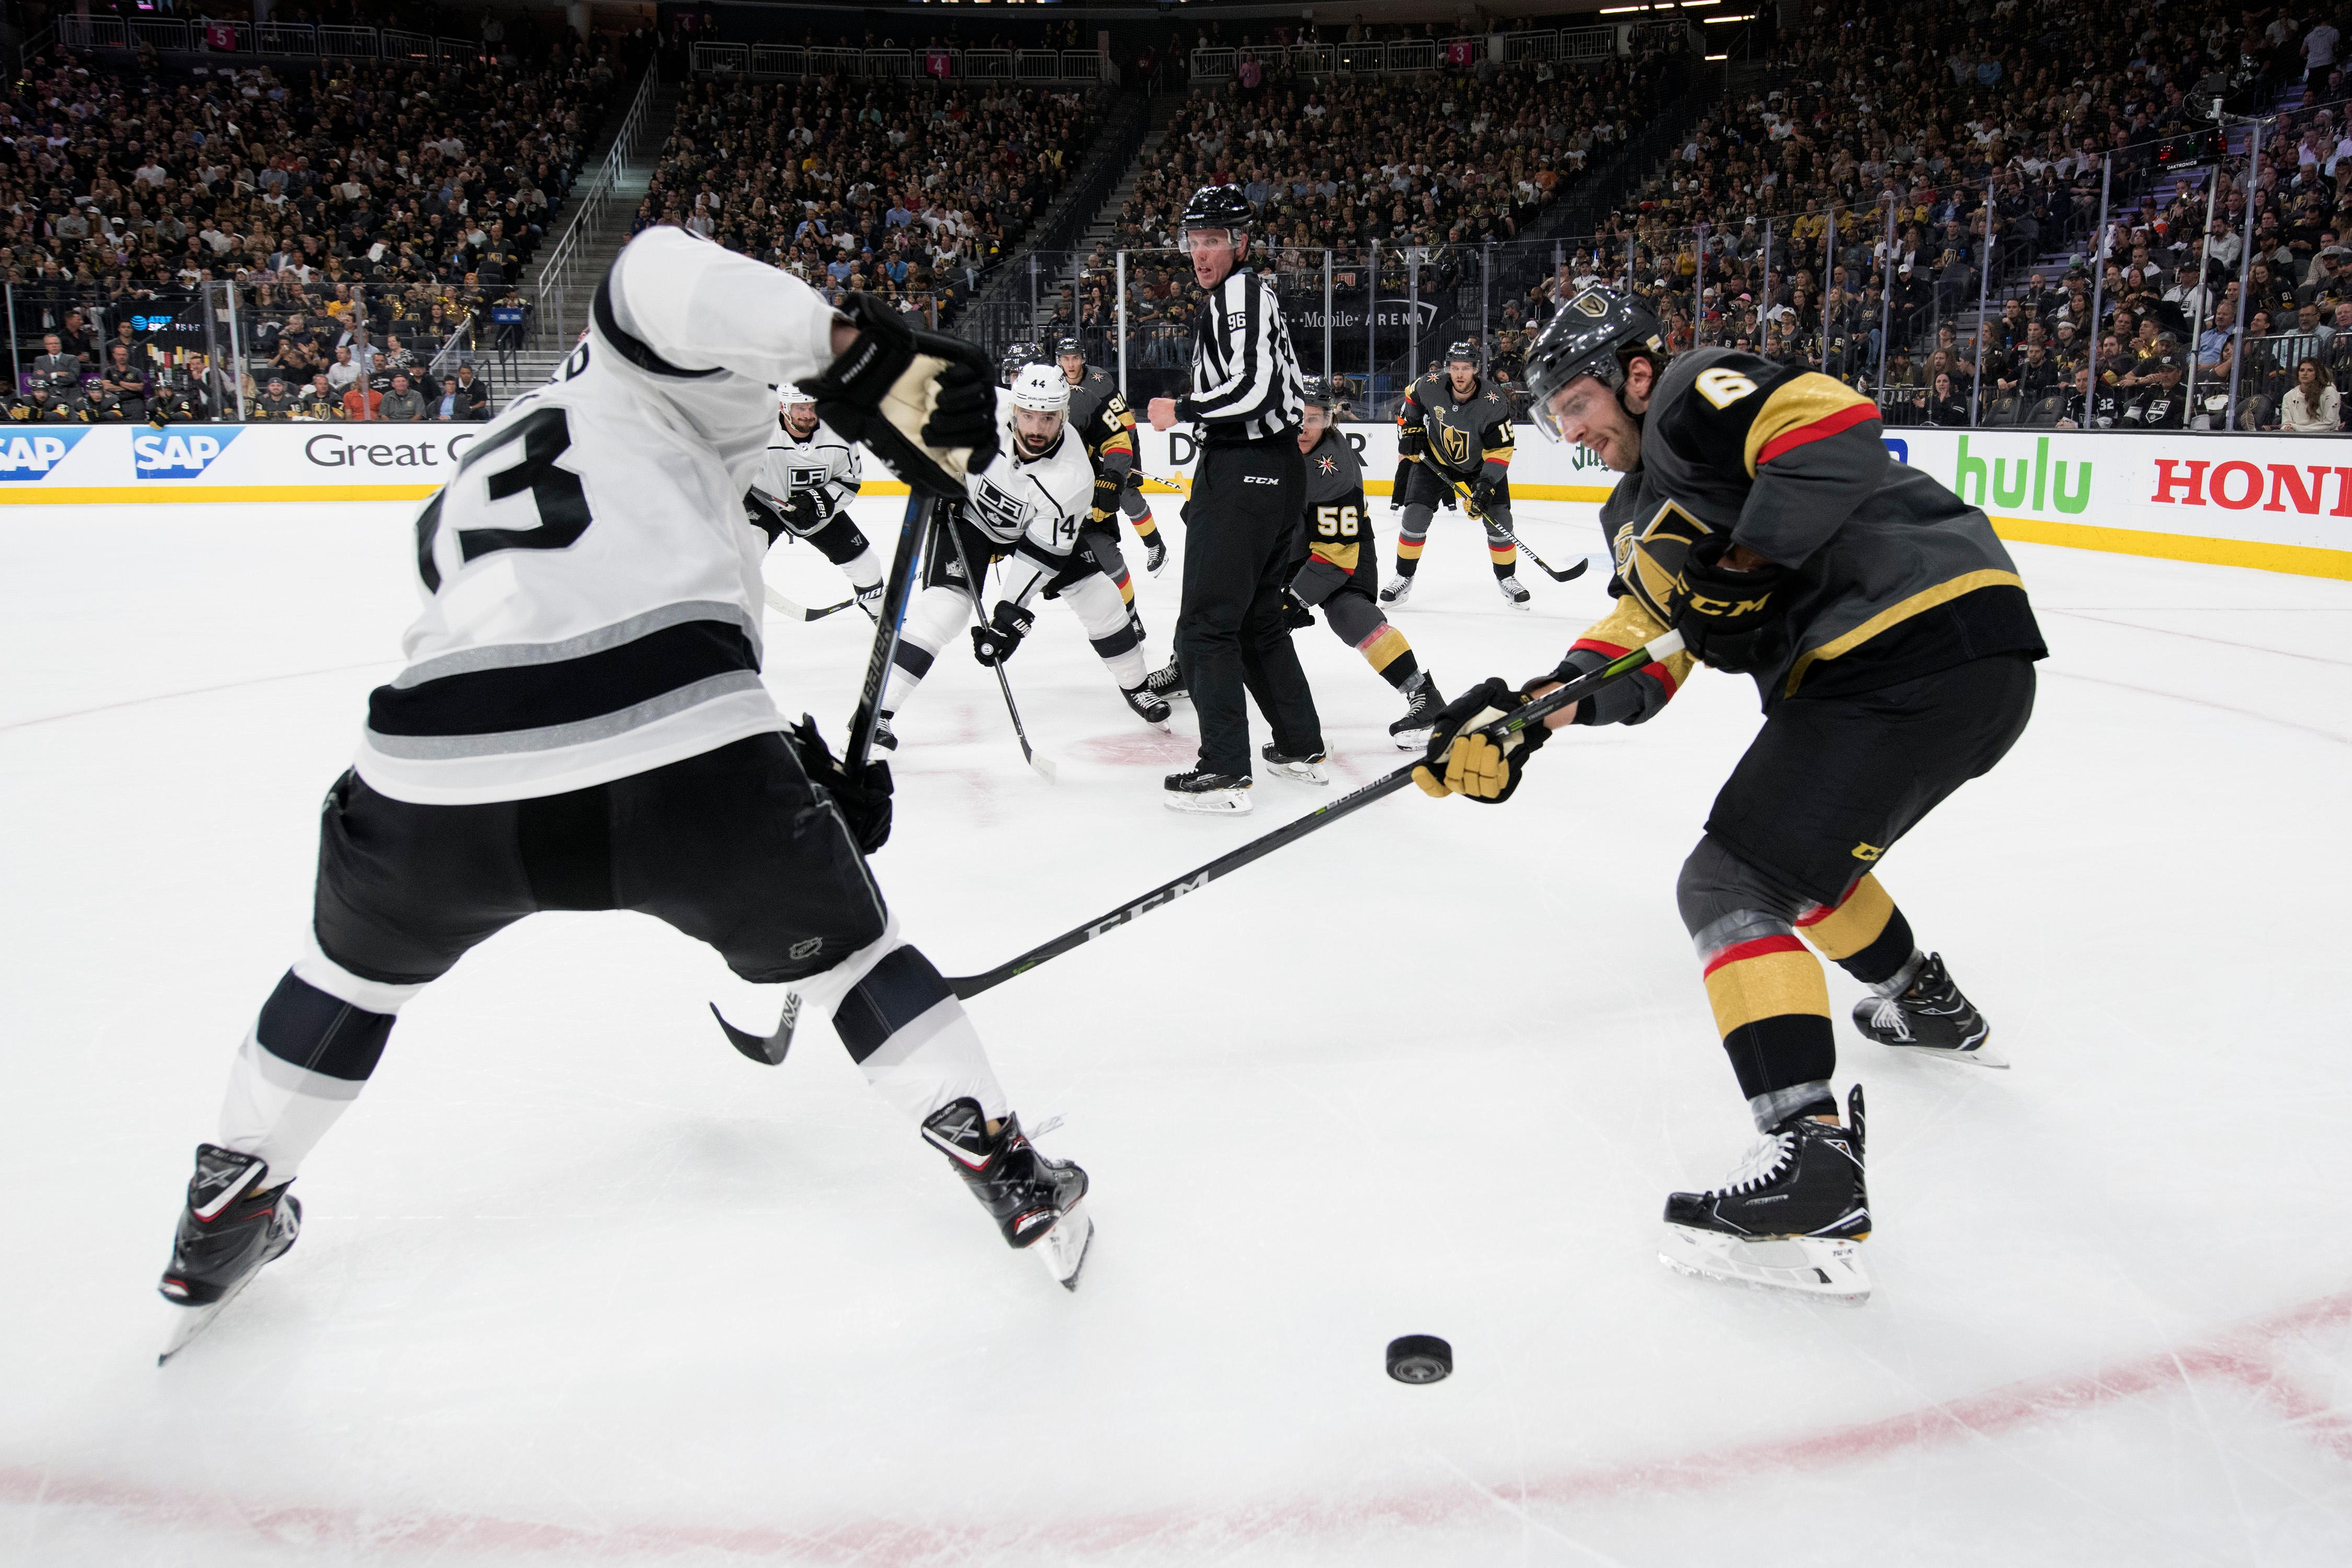 Los Angeles Kings left wing Kyle Clifford (13) and Vegas Golden Knights defenseman Colin Miller (6) vie for a face-off puck during the first period of Game 1 of their NHL hockey first-round playoff series Wednesday, April 11, 2018 at T-Mobile Arena. The Knights won 1-0. CREDIT: Sam Morris/Las Vegas News Bureau